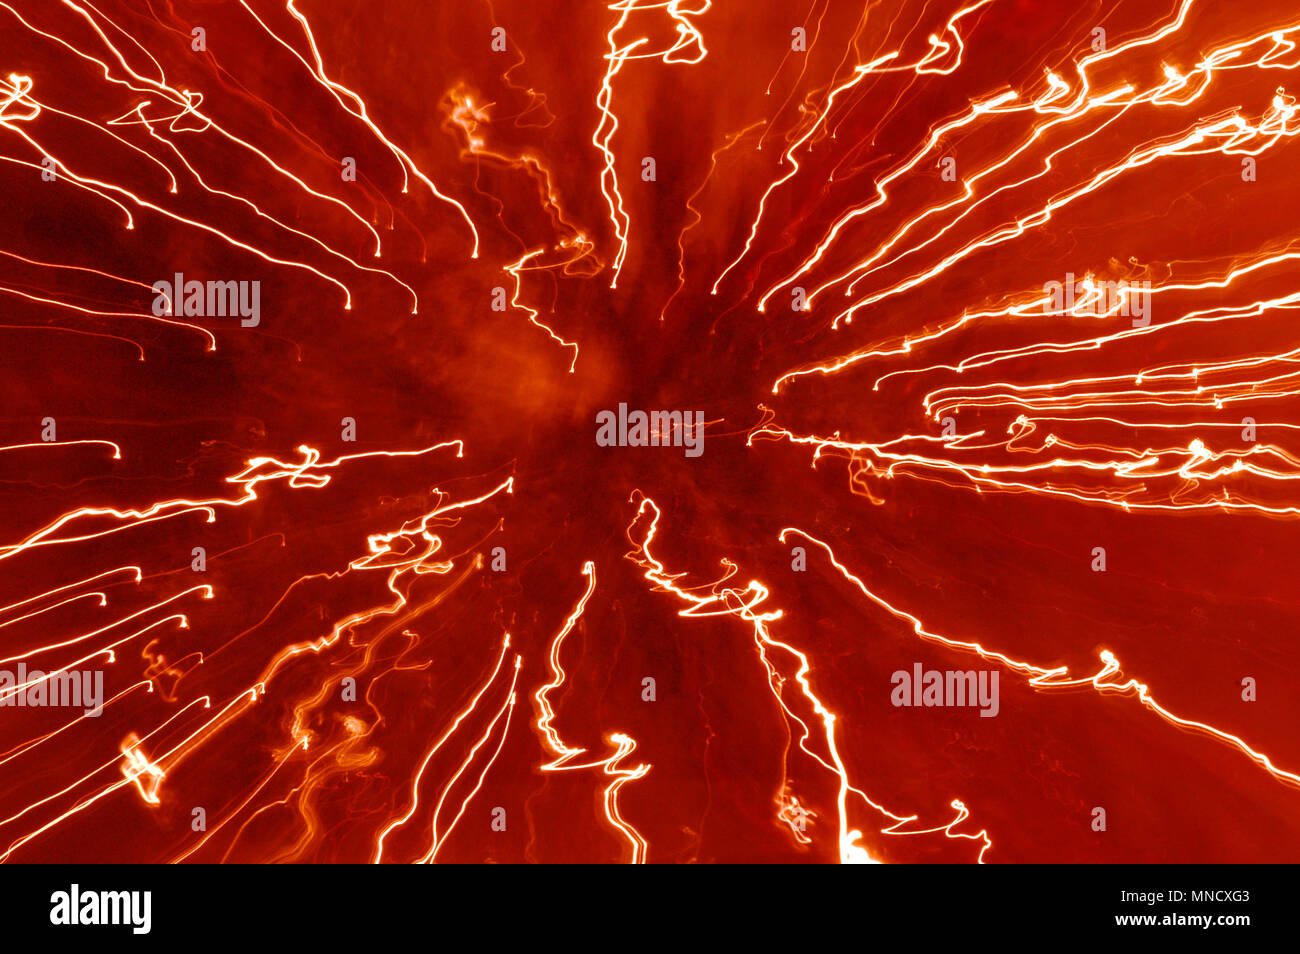 LONDON, ENGLAND - JANUARY 4 : Abstract hot red streaking white lights of zooming light trails. January 6, 2006. United Kingdom. - Stock Image